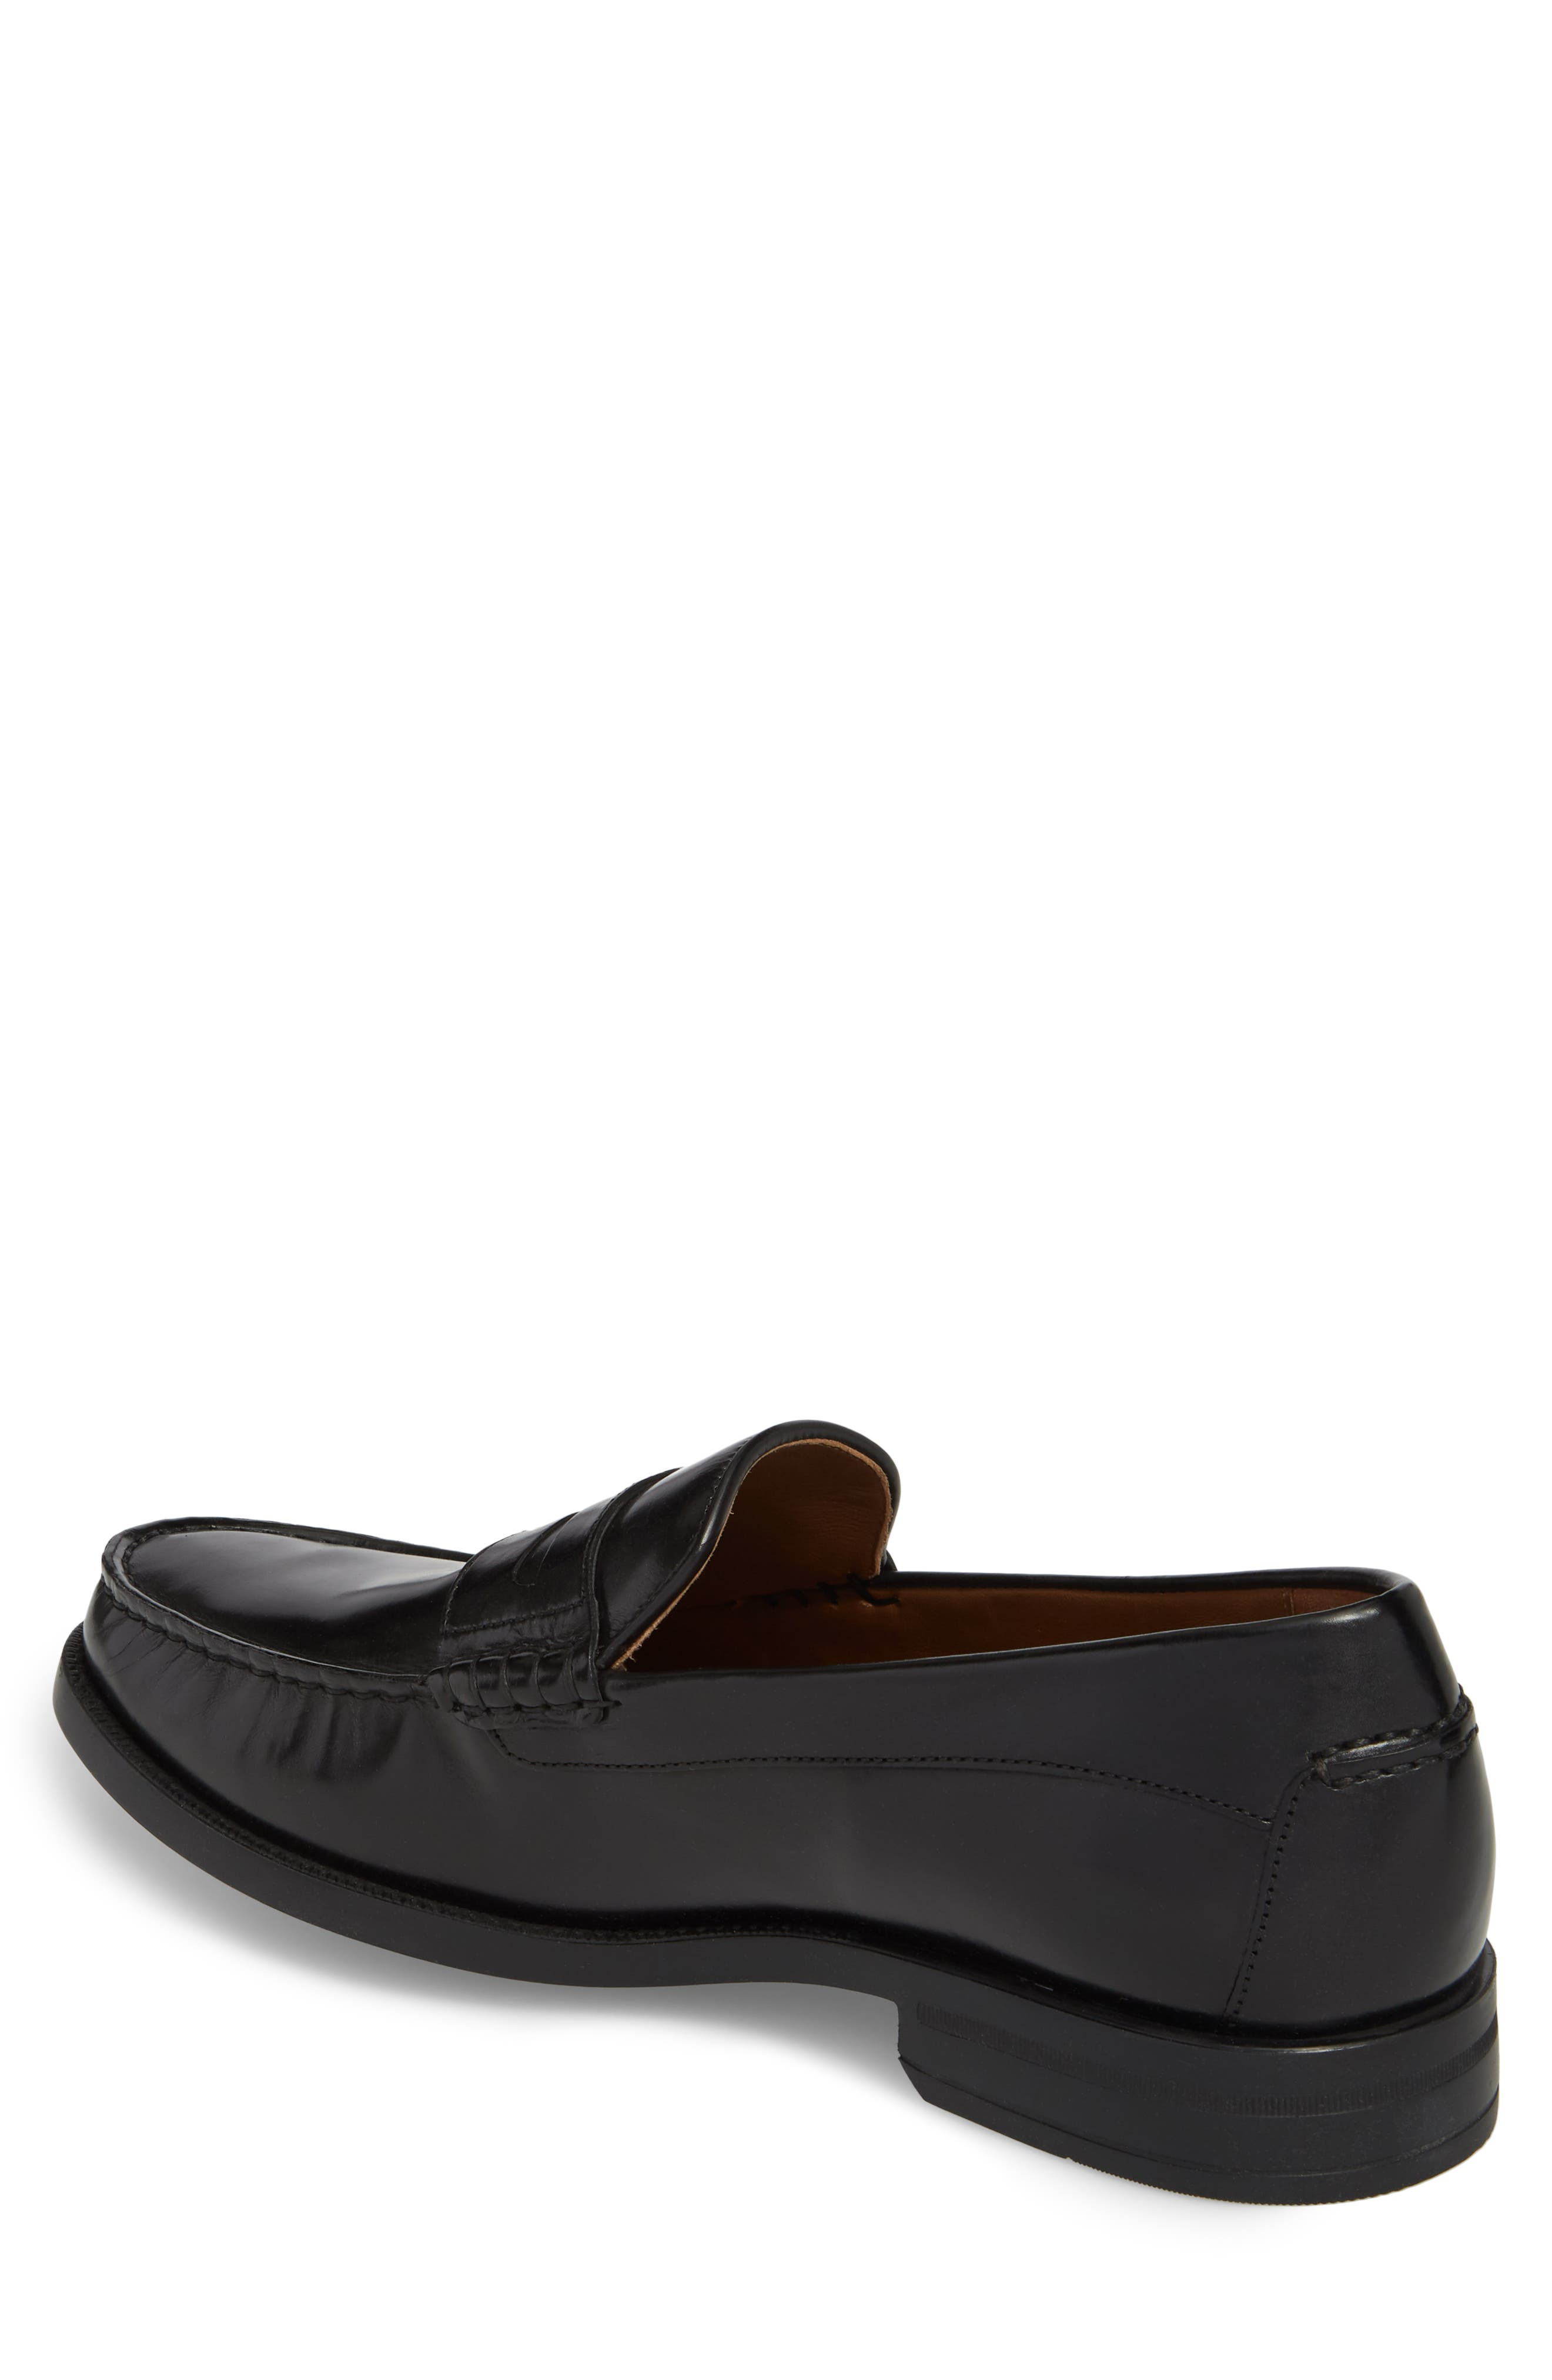 Chadwell Penny Loafer,                             Alternate thumbnail 2, color,                             BLACK LEATHER